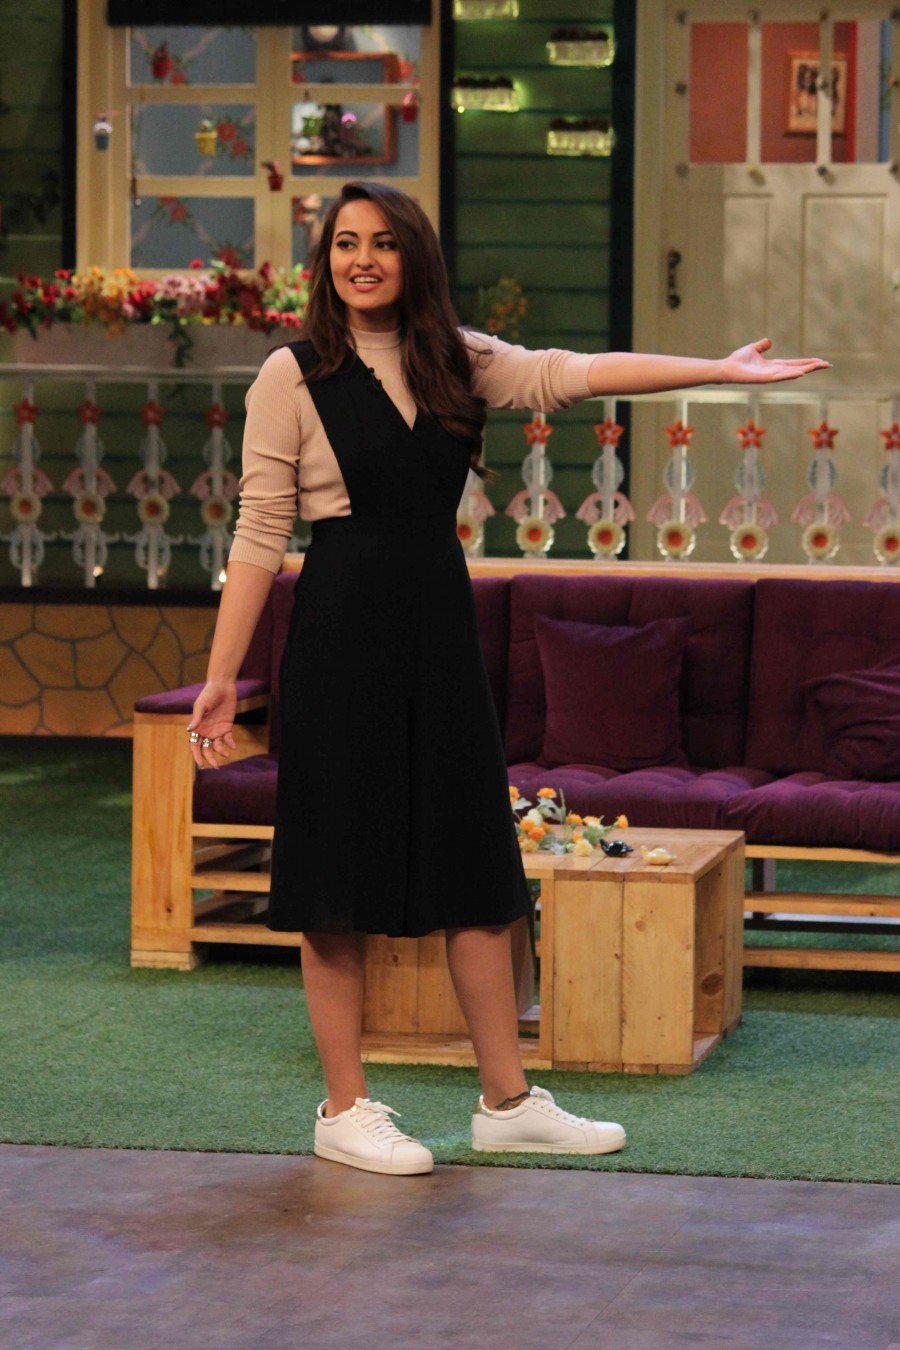 Sonakshi Sinha,Sonakshi Sinha promotes Akira movie,Sonakshi Sinha at The Kapil Sharma Show,Sonakshi Sinha promotes Akira movie on The Kapil Sharma Show,actress Sonakshi Sinha,Sonakshi Sinha latest pics,Sonakshi Sinha latest images,Sonakshi Sinha latest ph